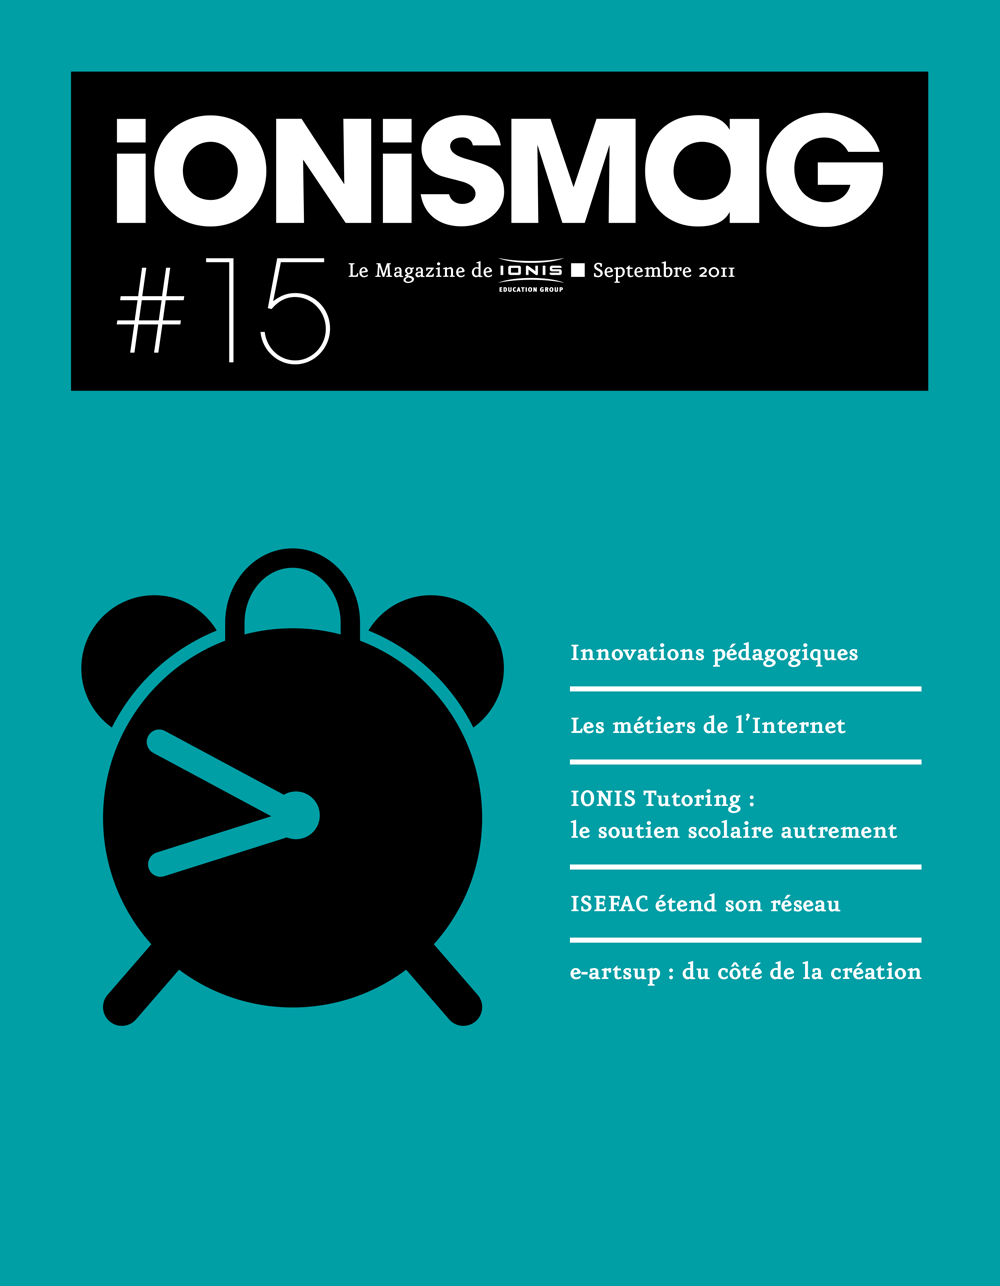 IONIS MAG 15